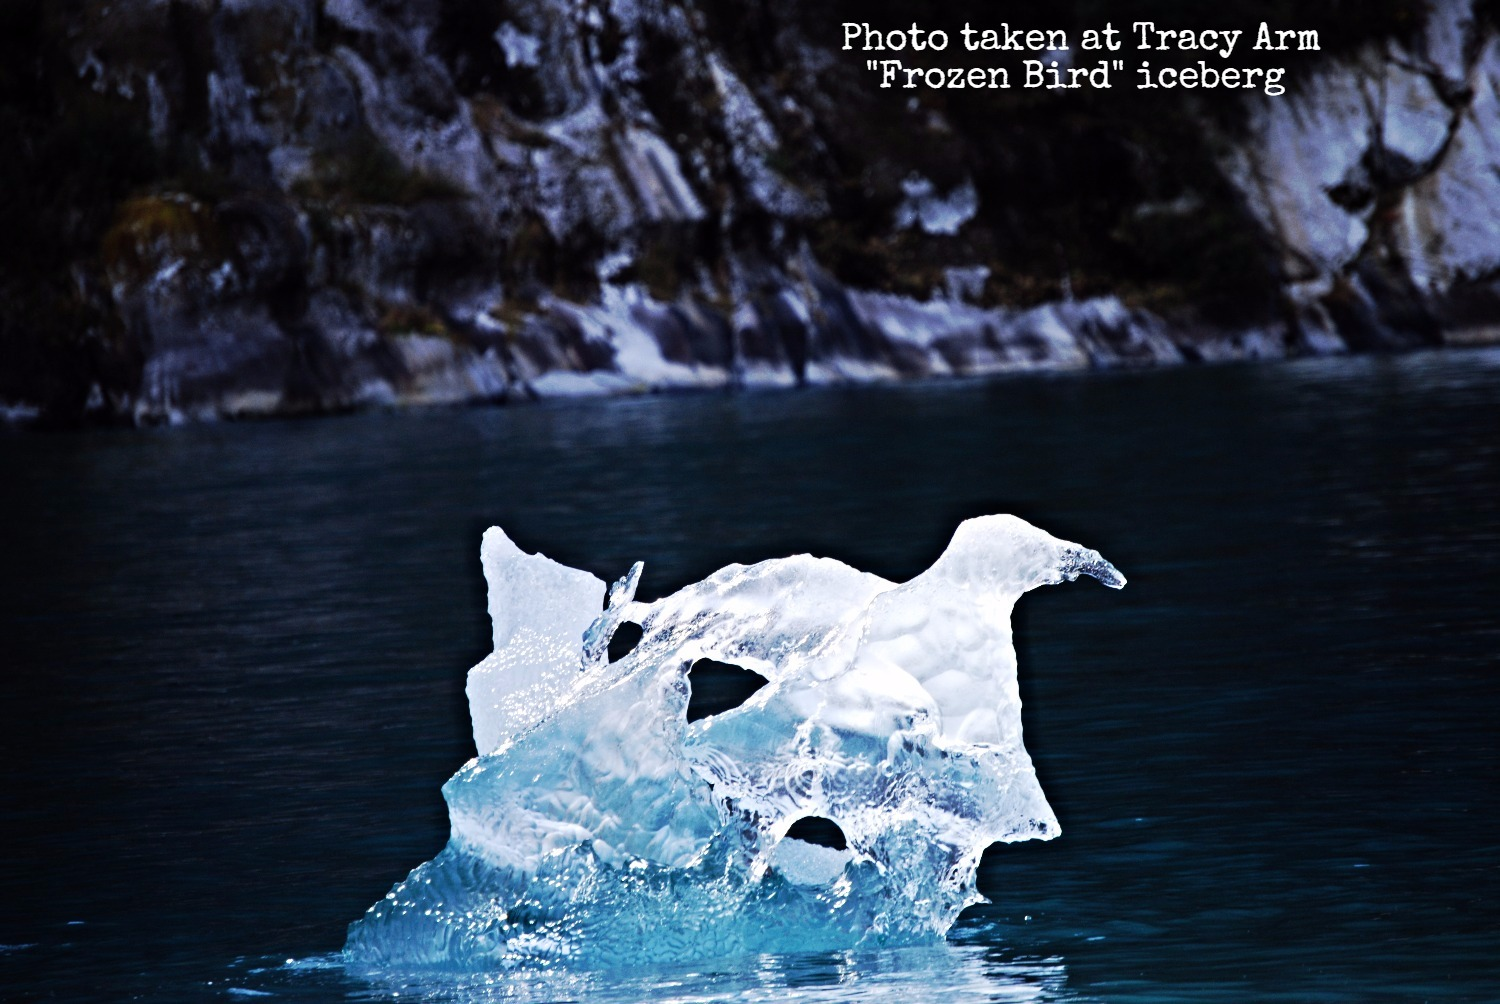 Frozen Bird - Tracy Arm